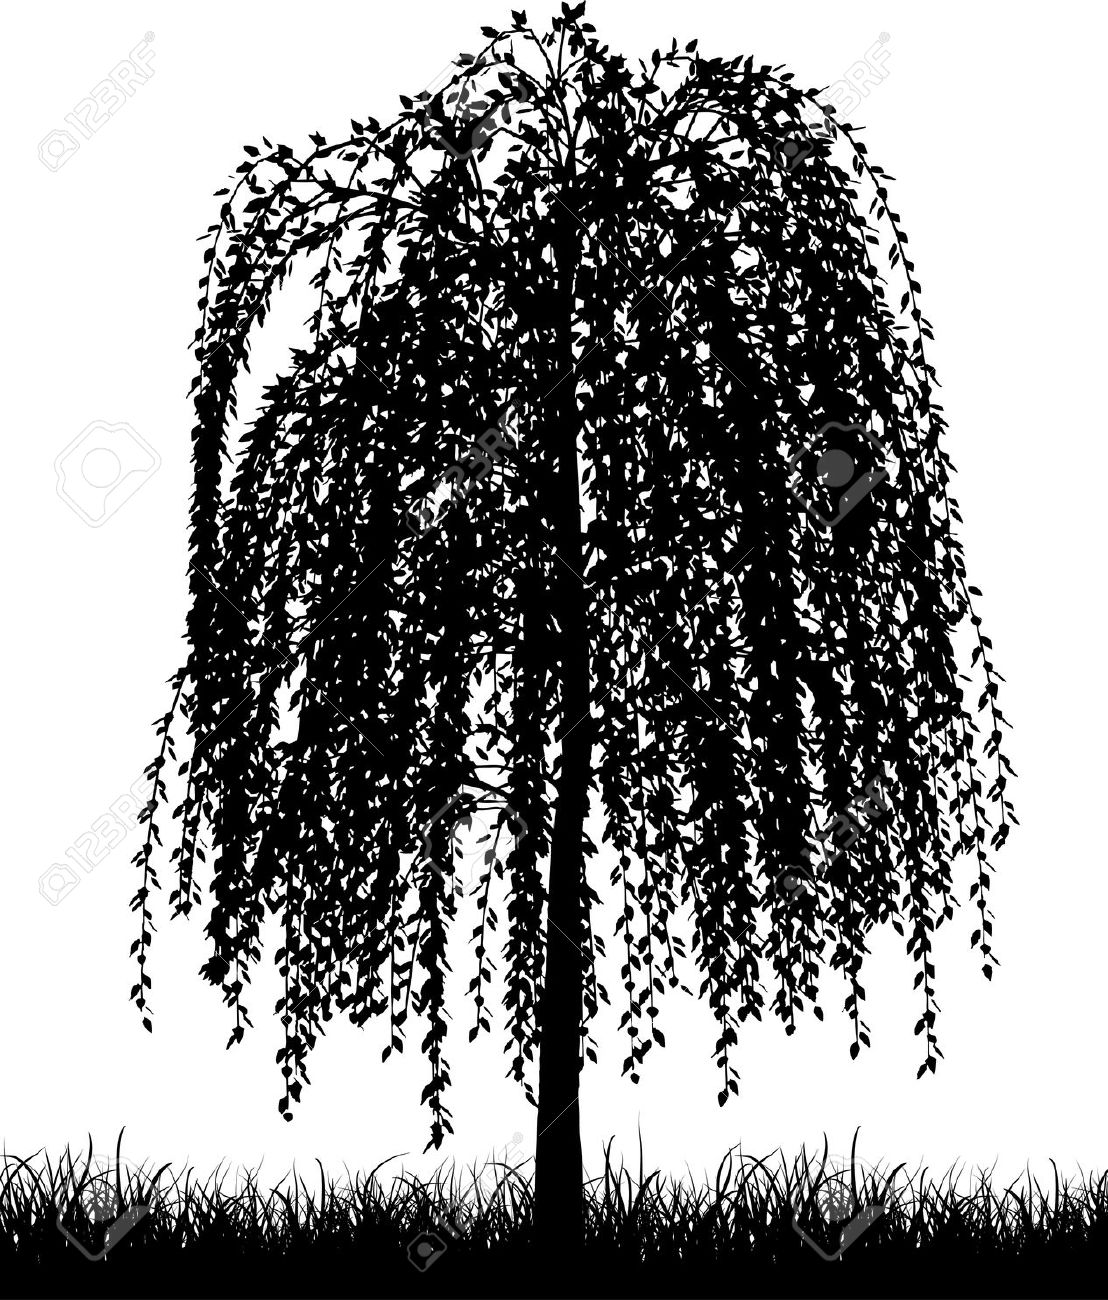 Weeping Willow clipart #16, Download drawings